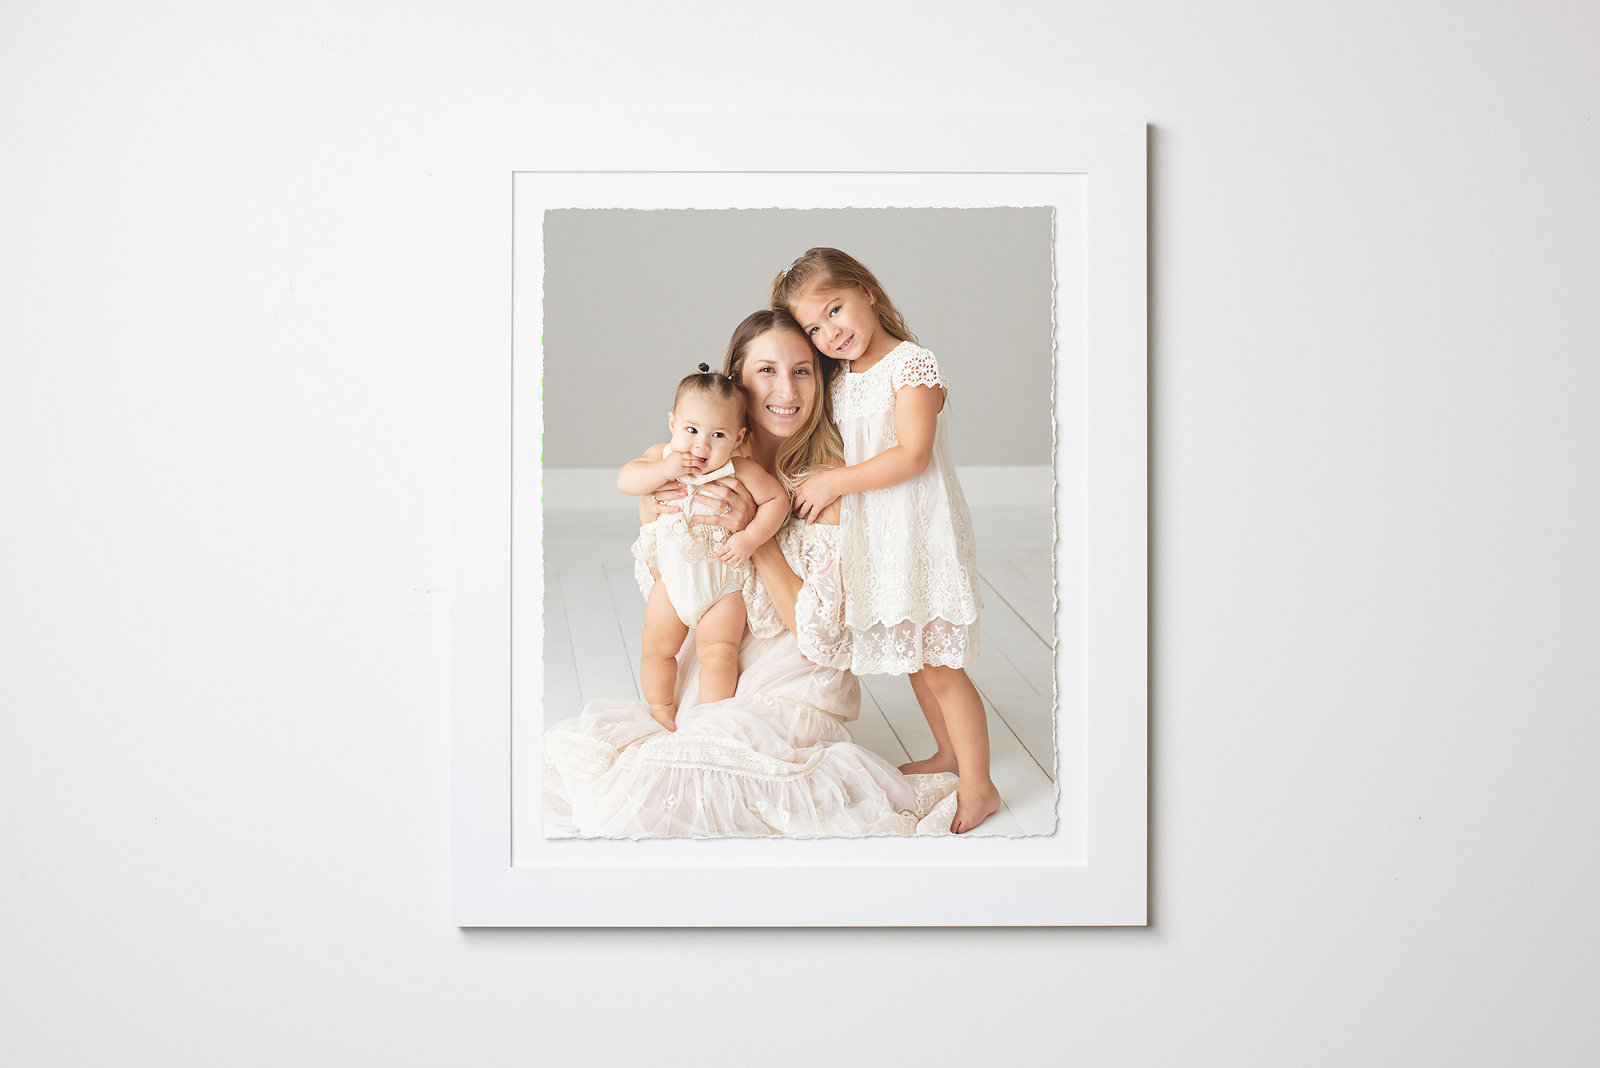 fine art print deckled edge mounted in custom frame | Reaj Roberts Photography